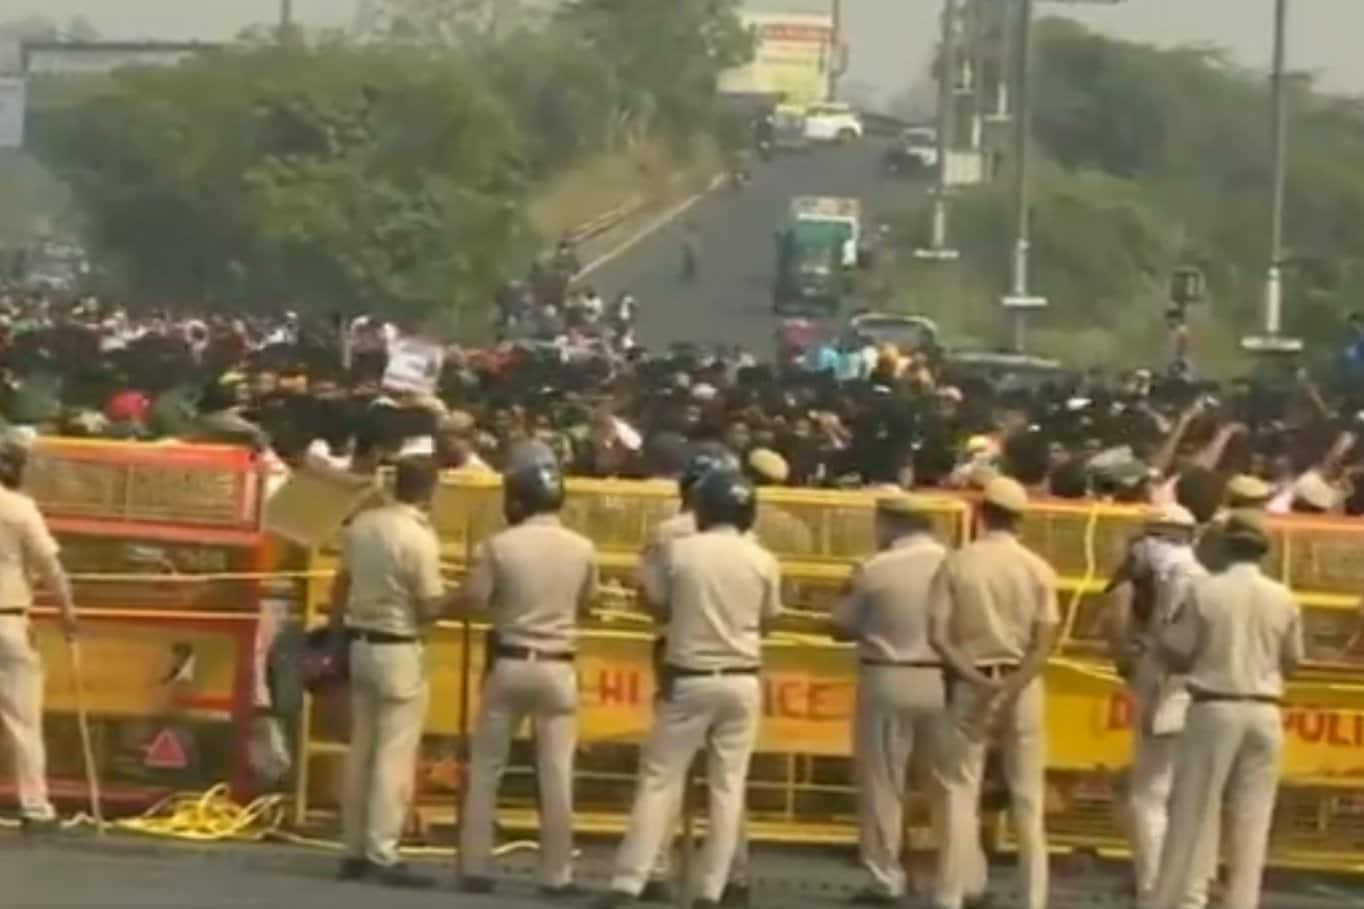 Protestors Block Delhi-Noida Flyway, Demand Justice for Businessman Aman Baisla Who Died by Suicide Last Month